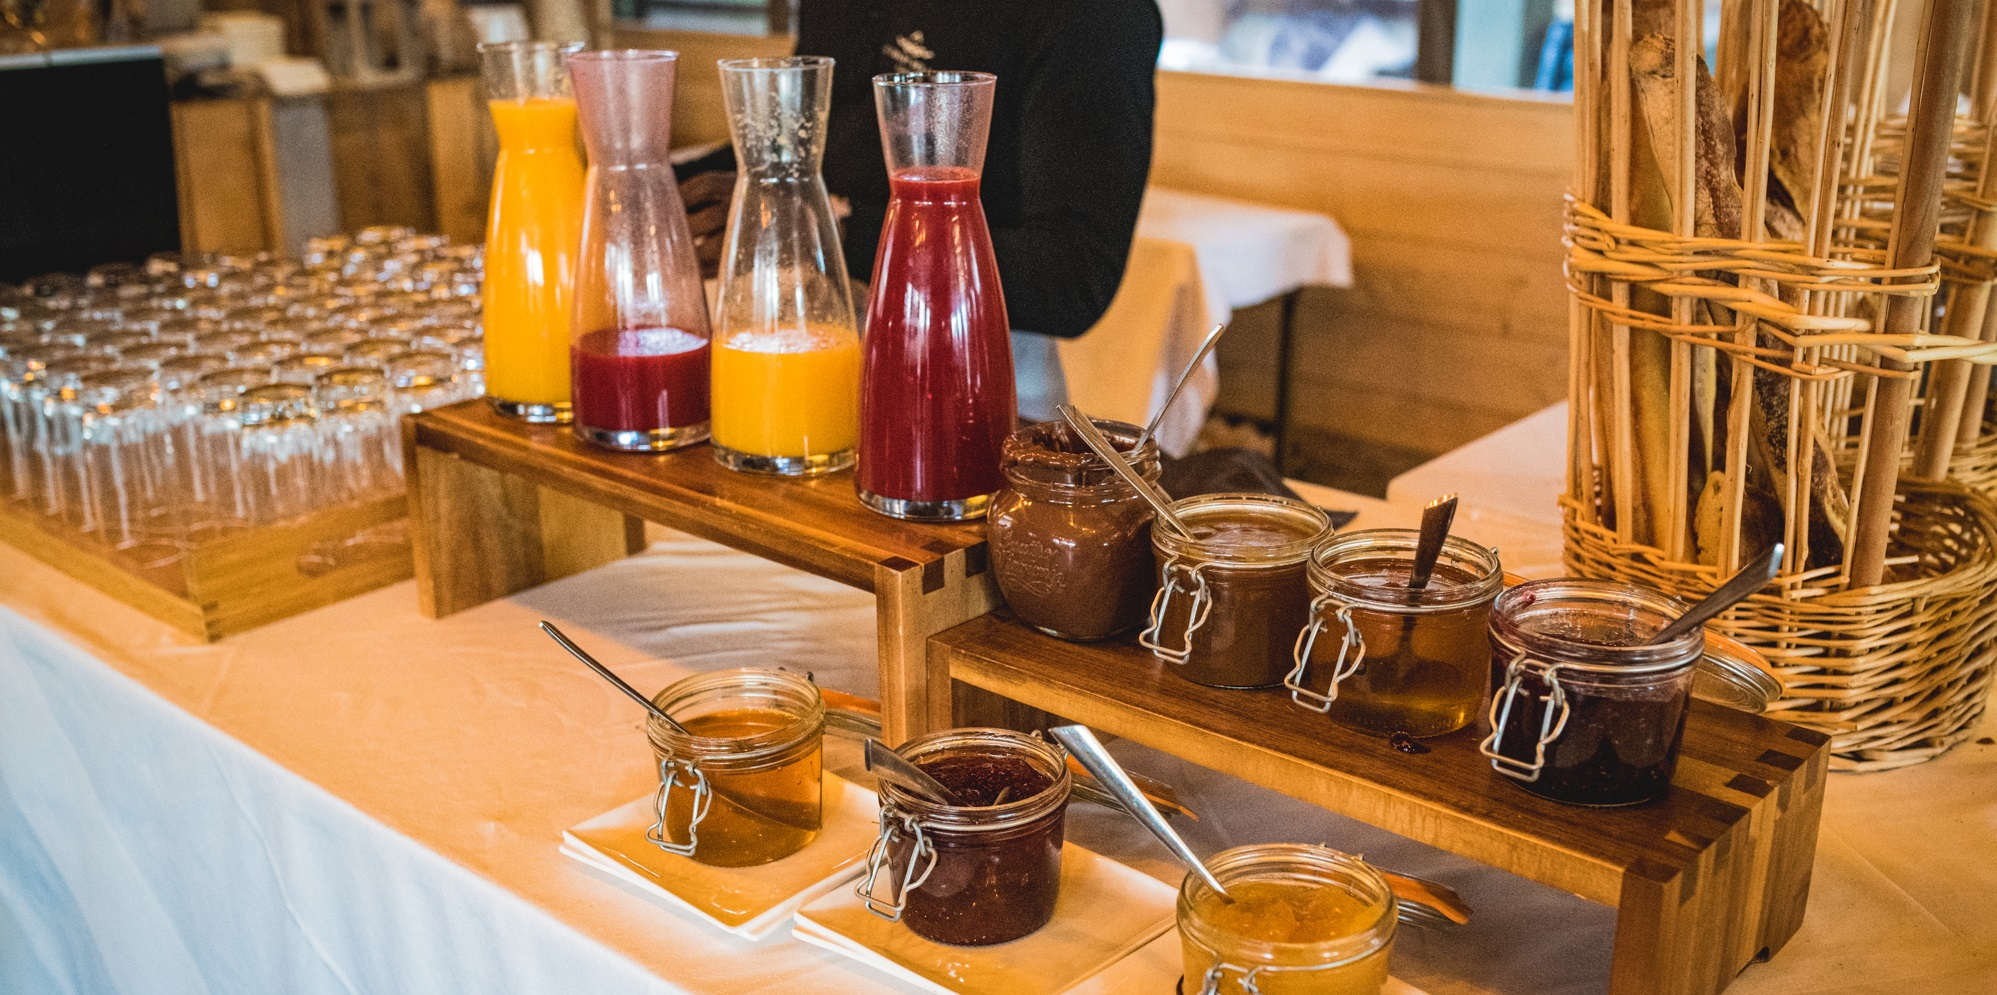 Brunch Chalet des Iles (75016 Paris)